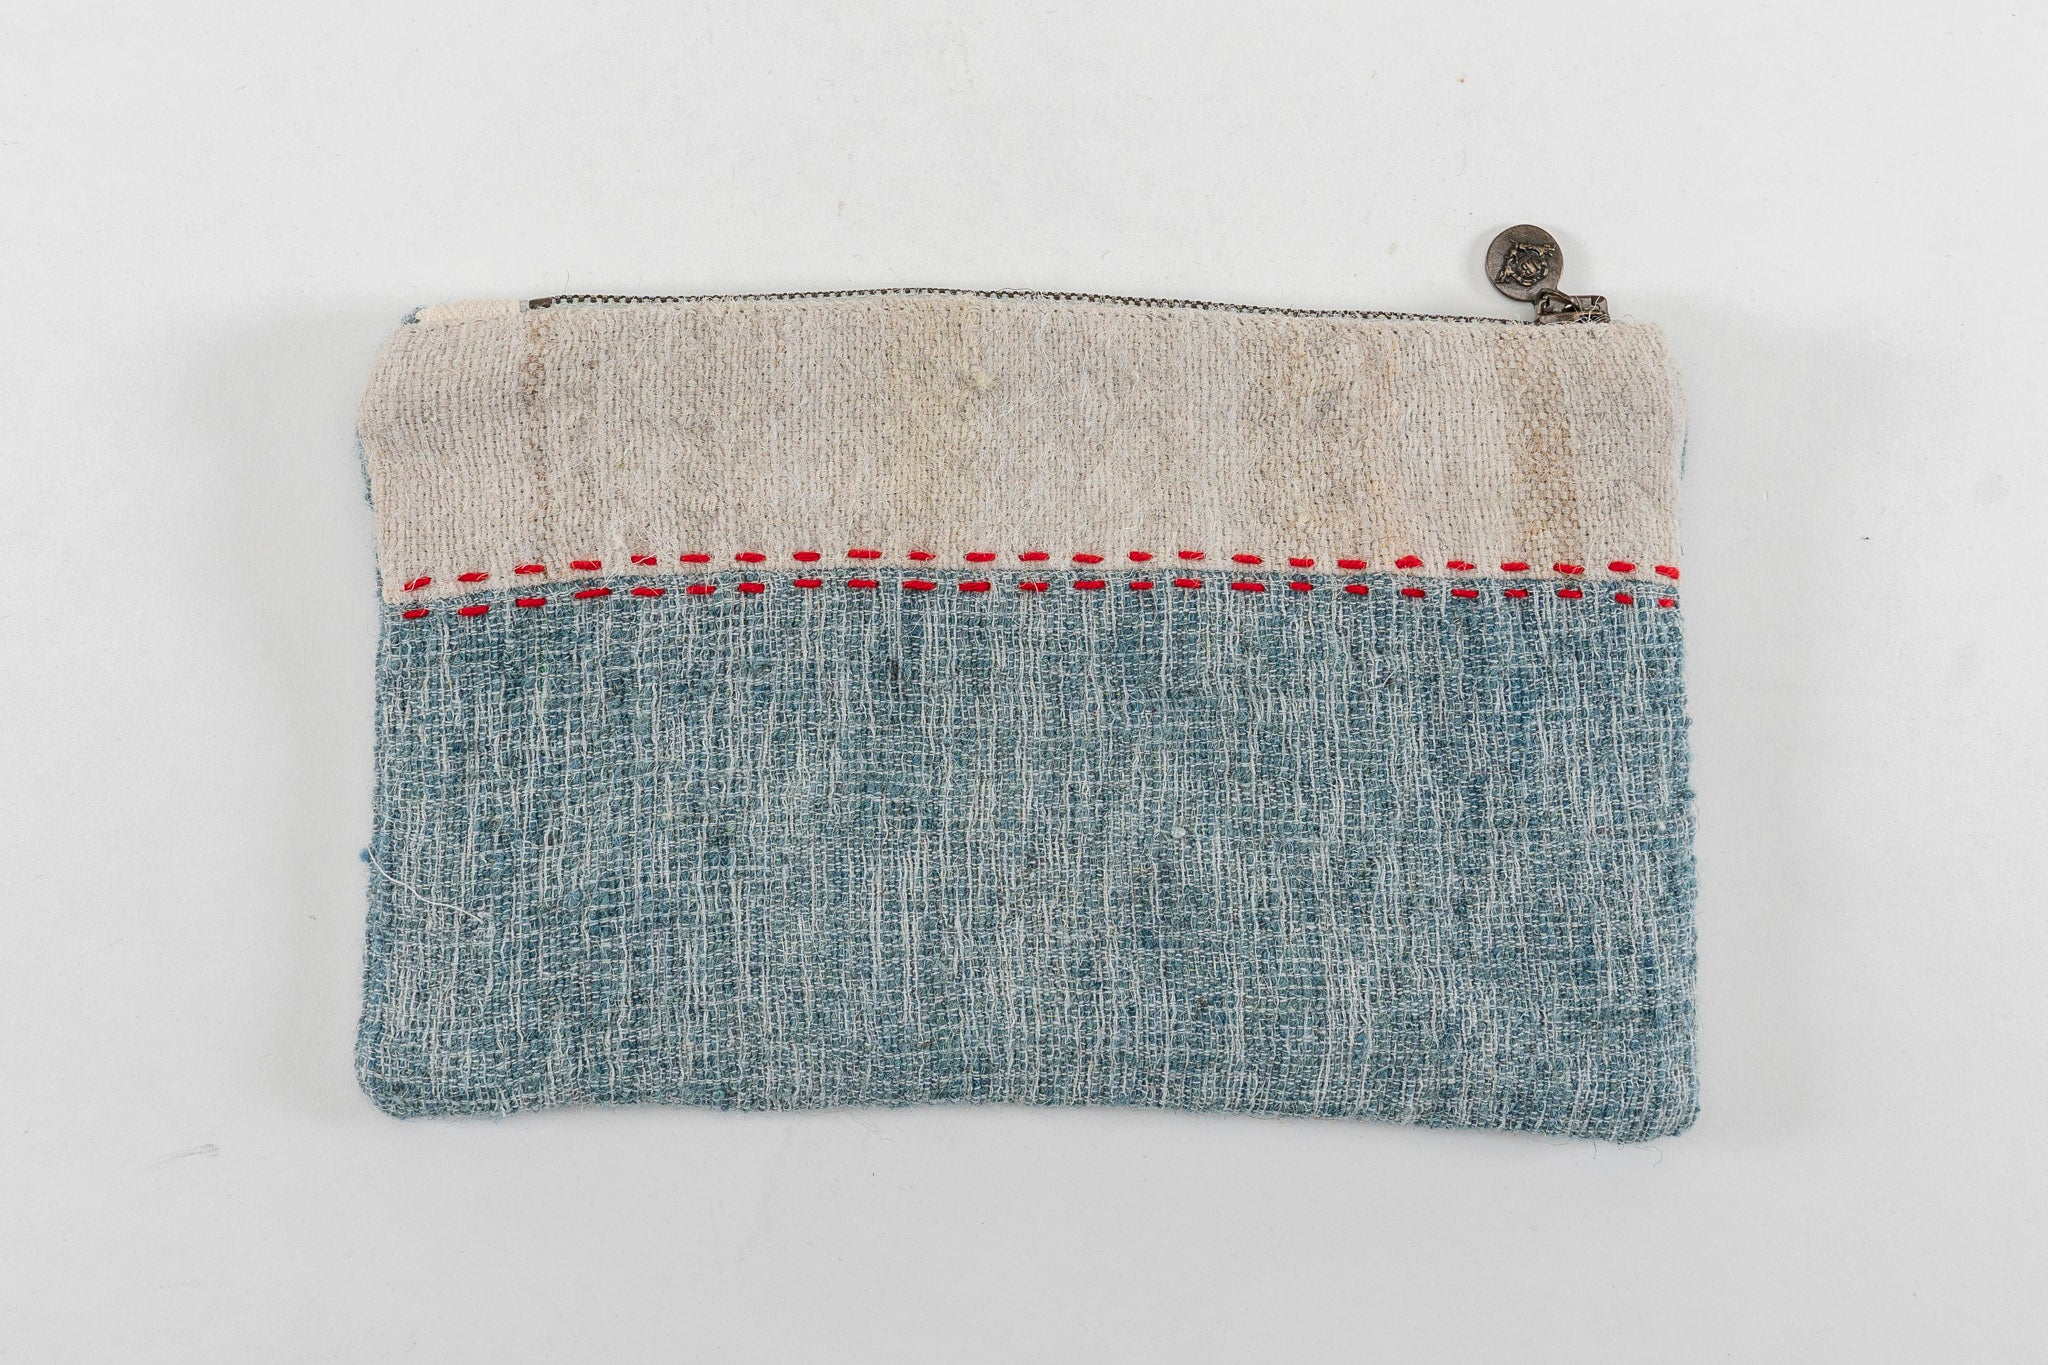 Bag: Handwoven wool, interior handwoven hemp lining